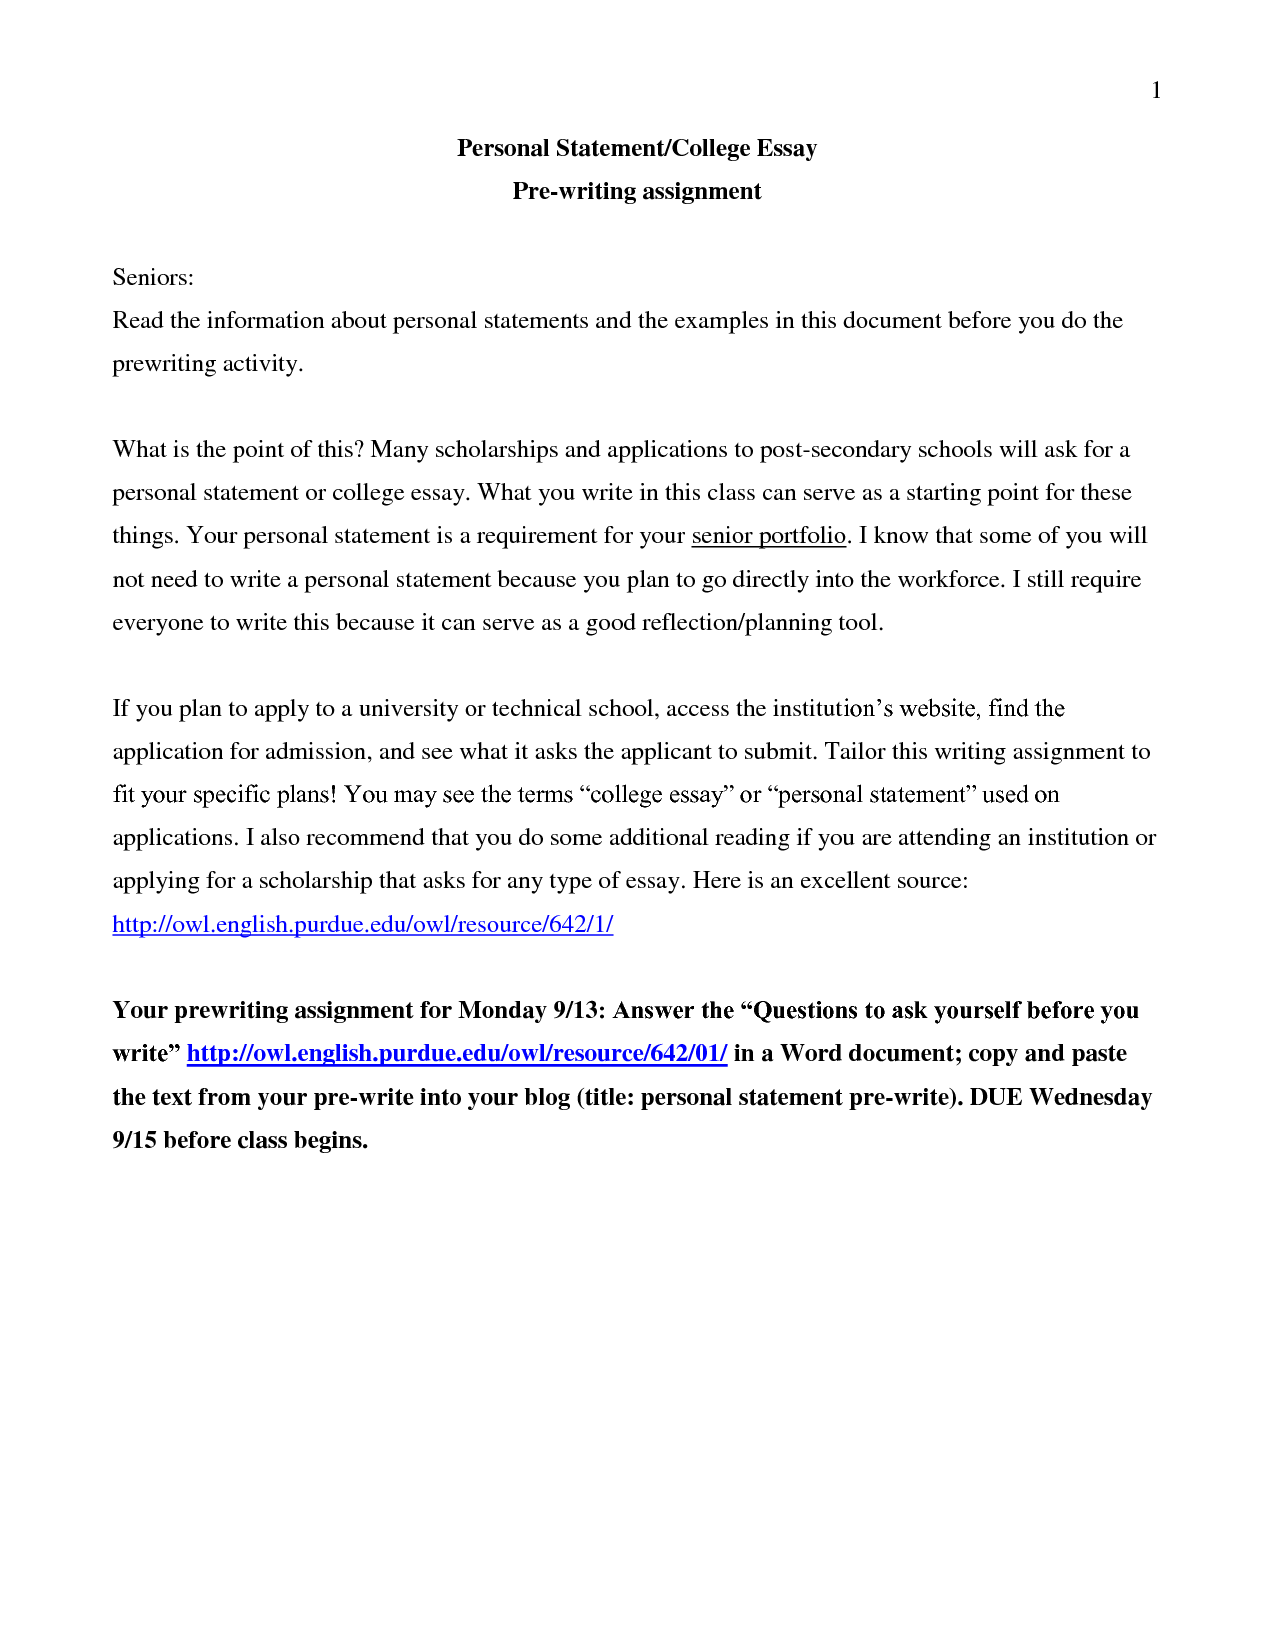 scholarship personal statement samples cover letter template for scholarship personal statement samples samples on best personal statements personal statement essays for scholarships examples template